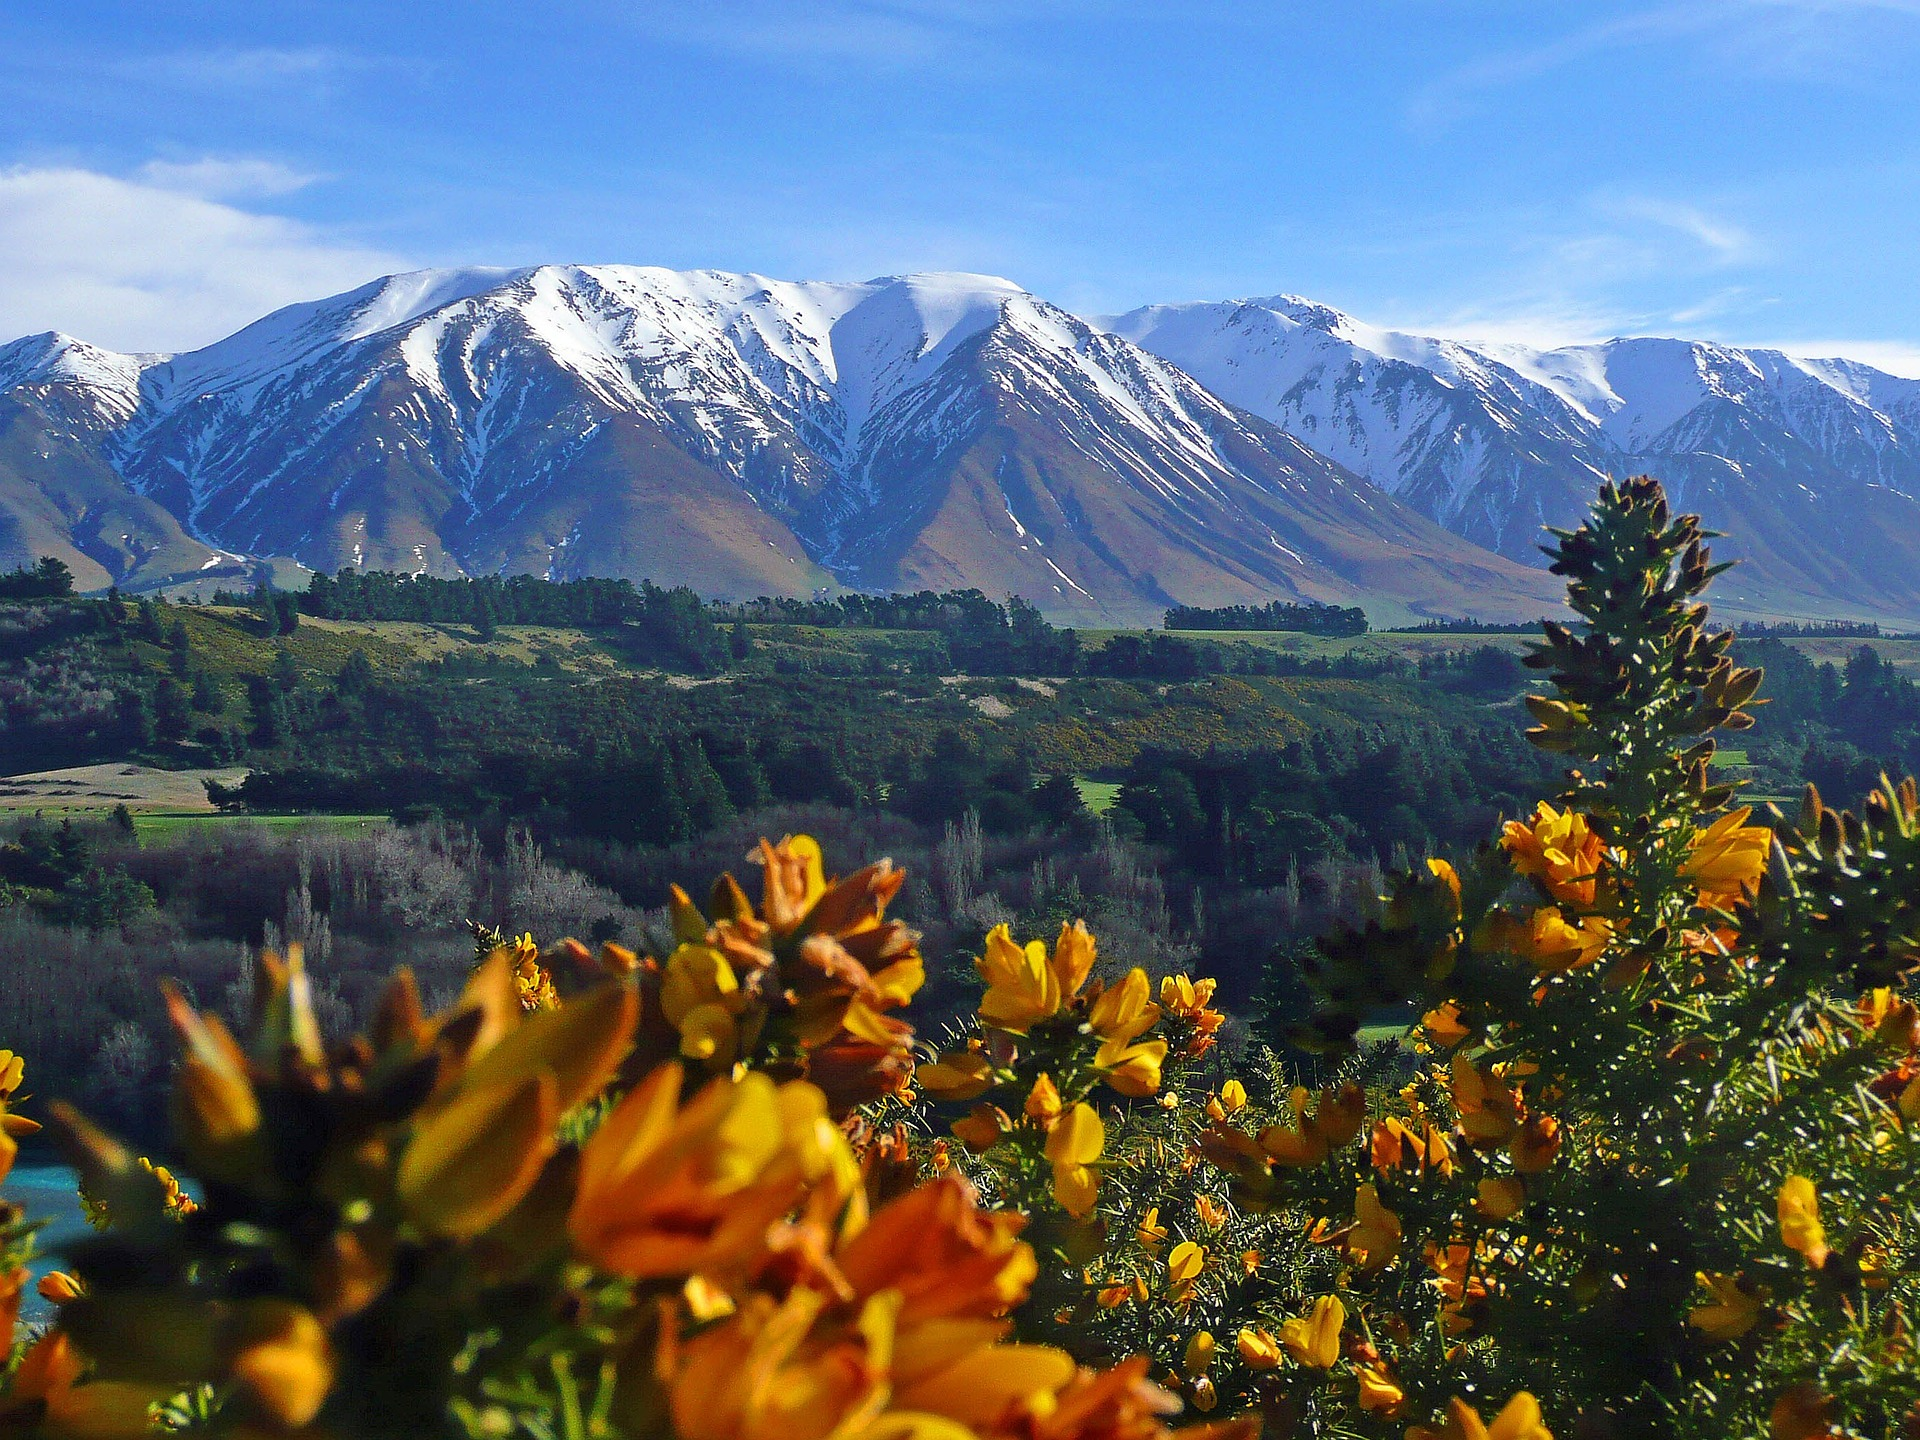 Featured image: Protecting New Zealand's natural treasures